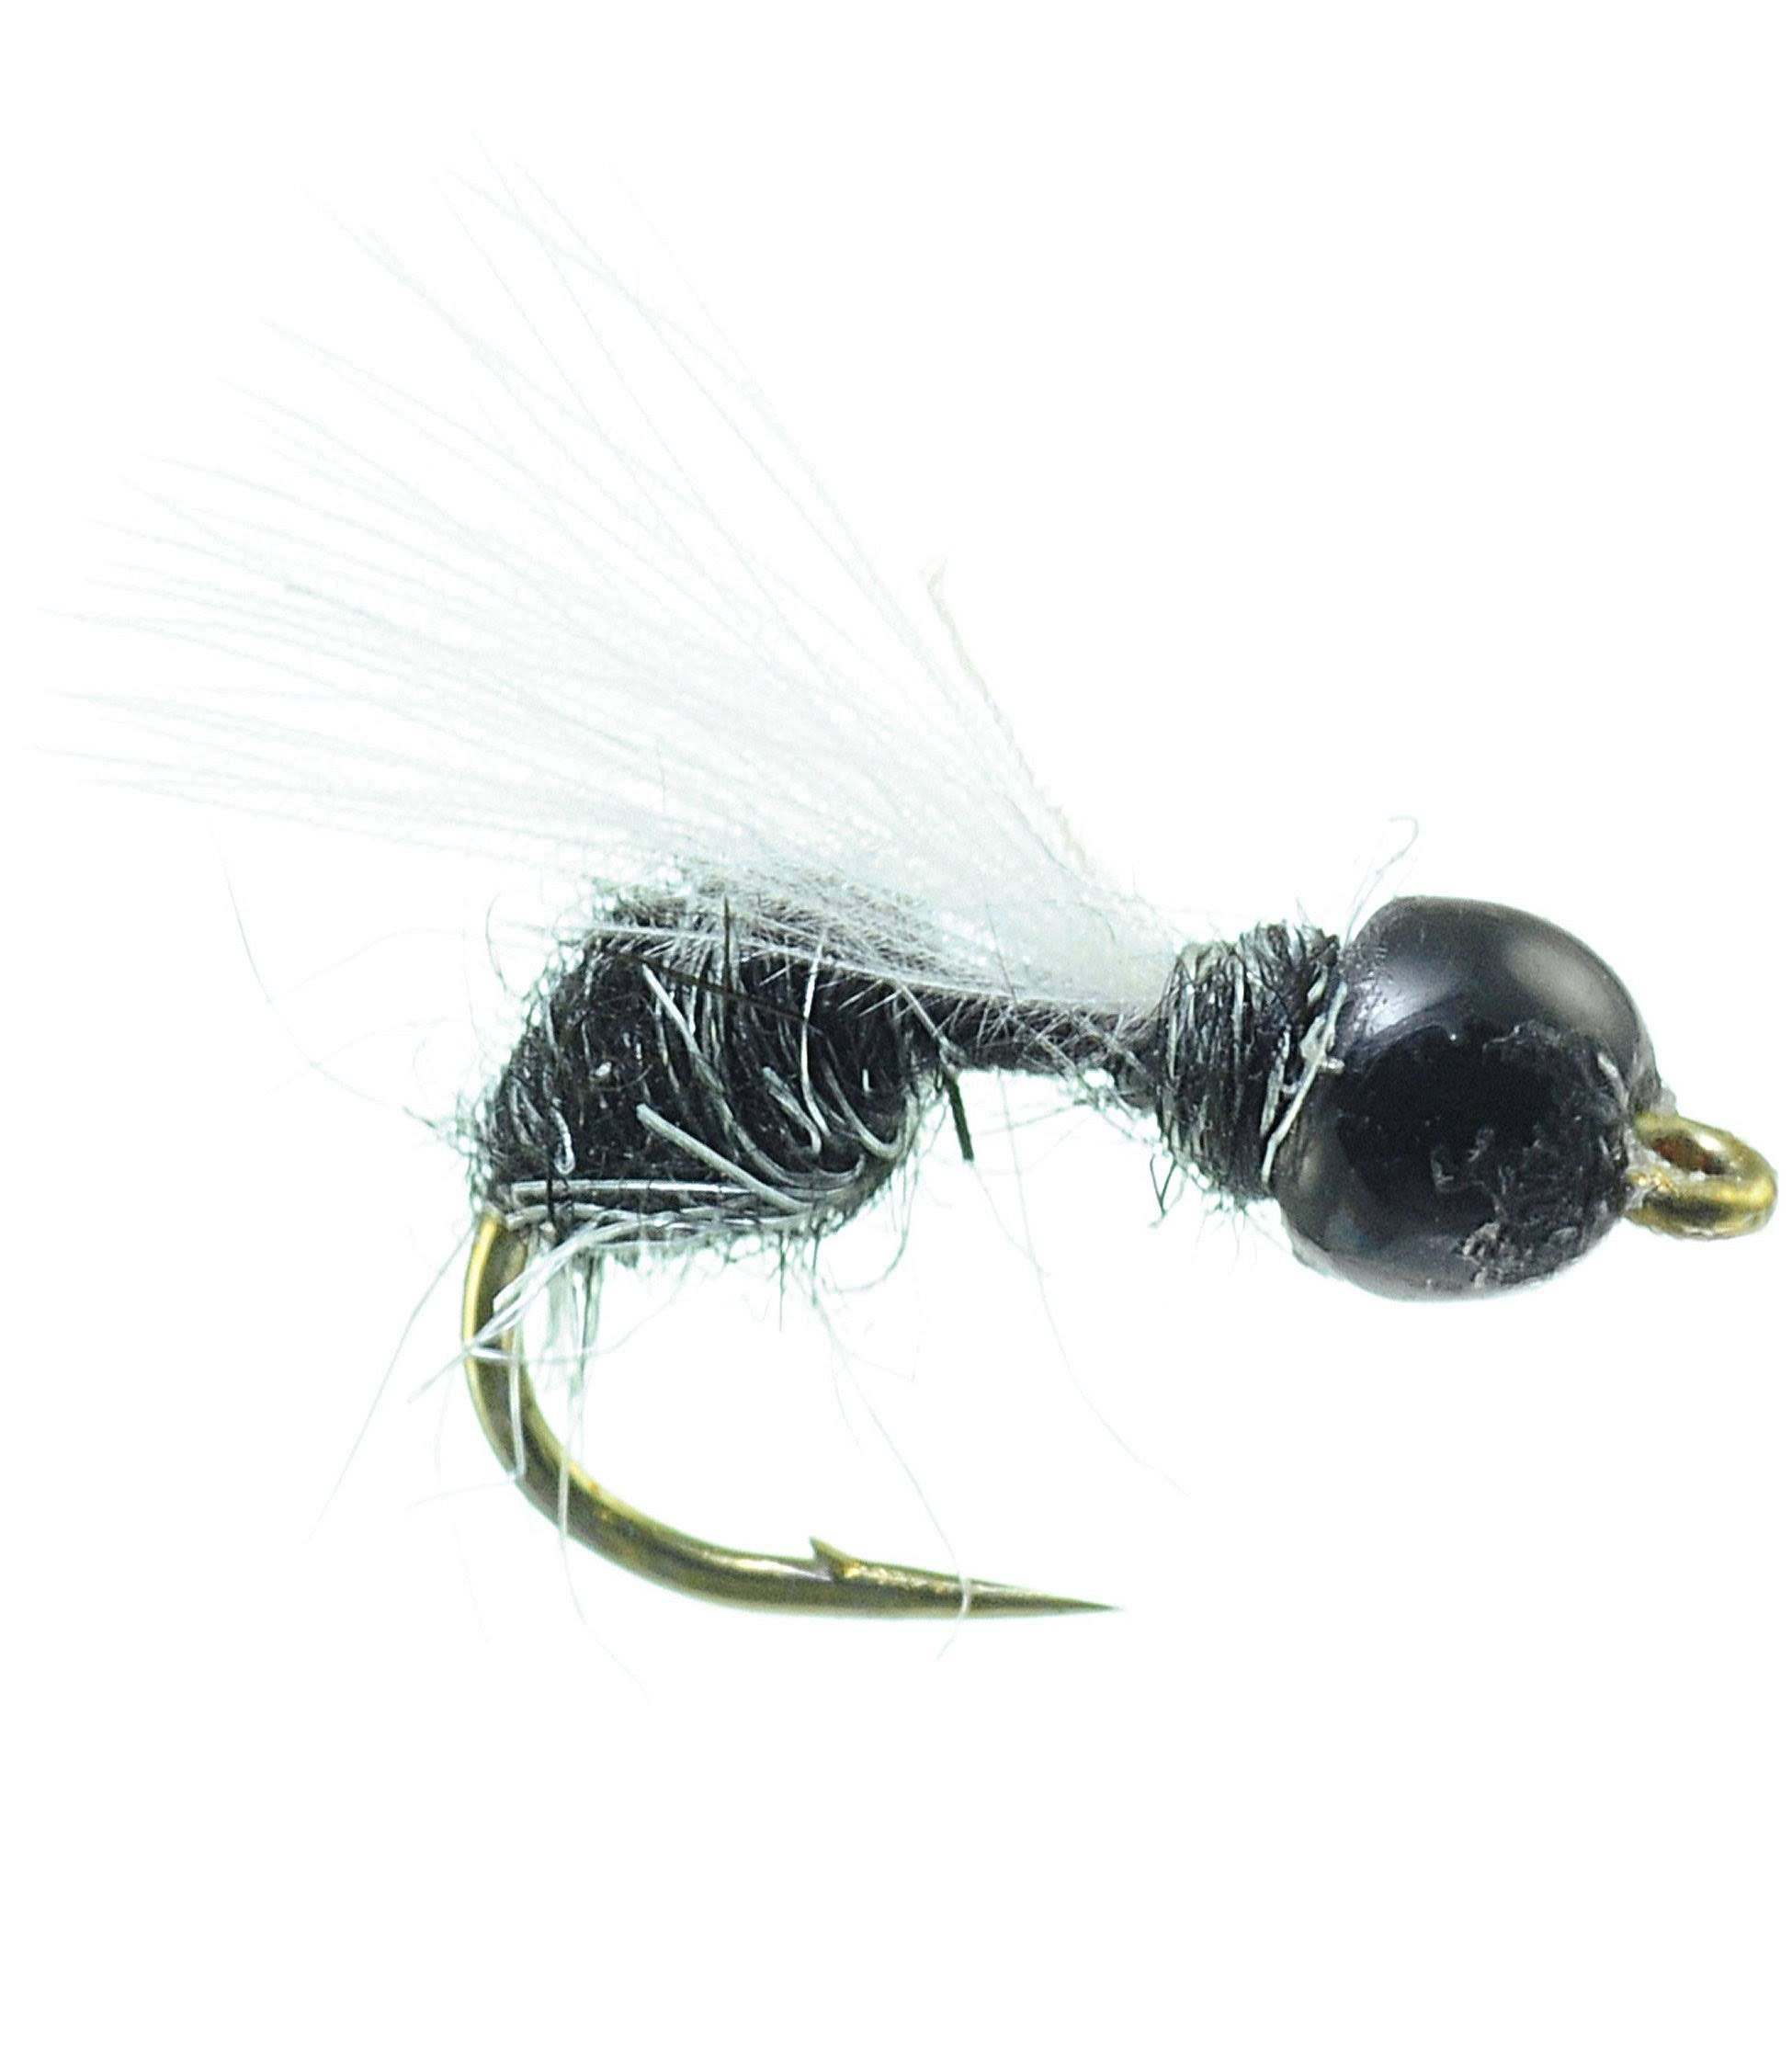 Umpqua - Tungsten Drowned Ant Fly - 2 Pack